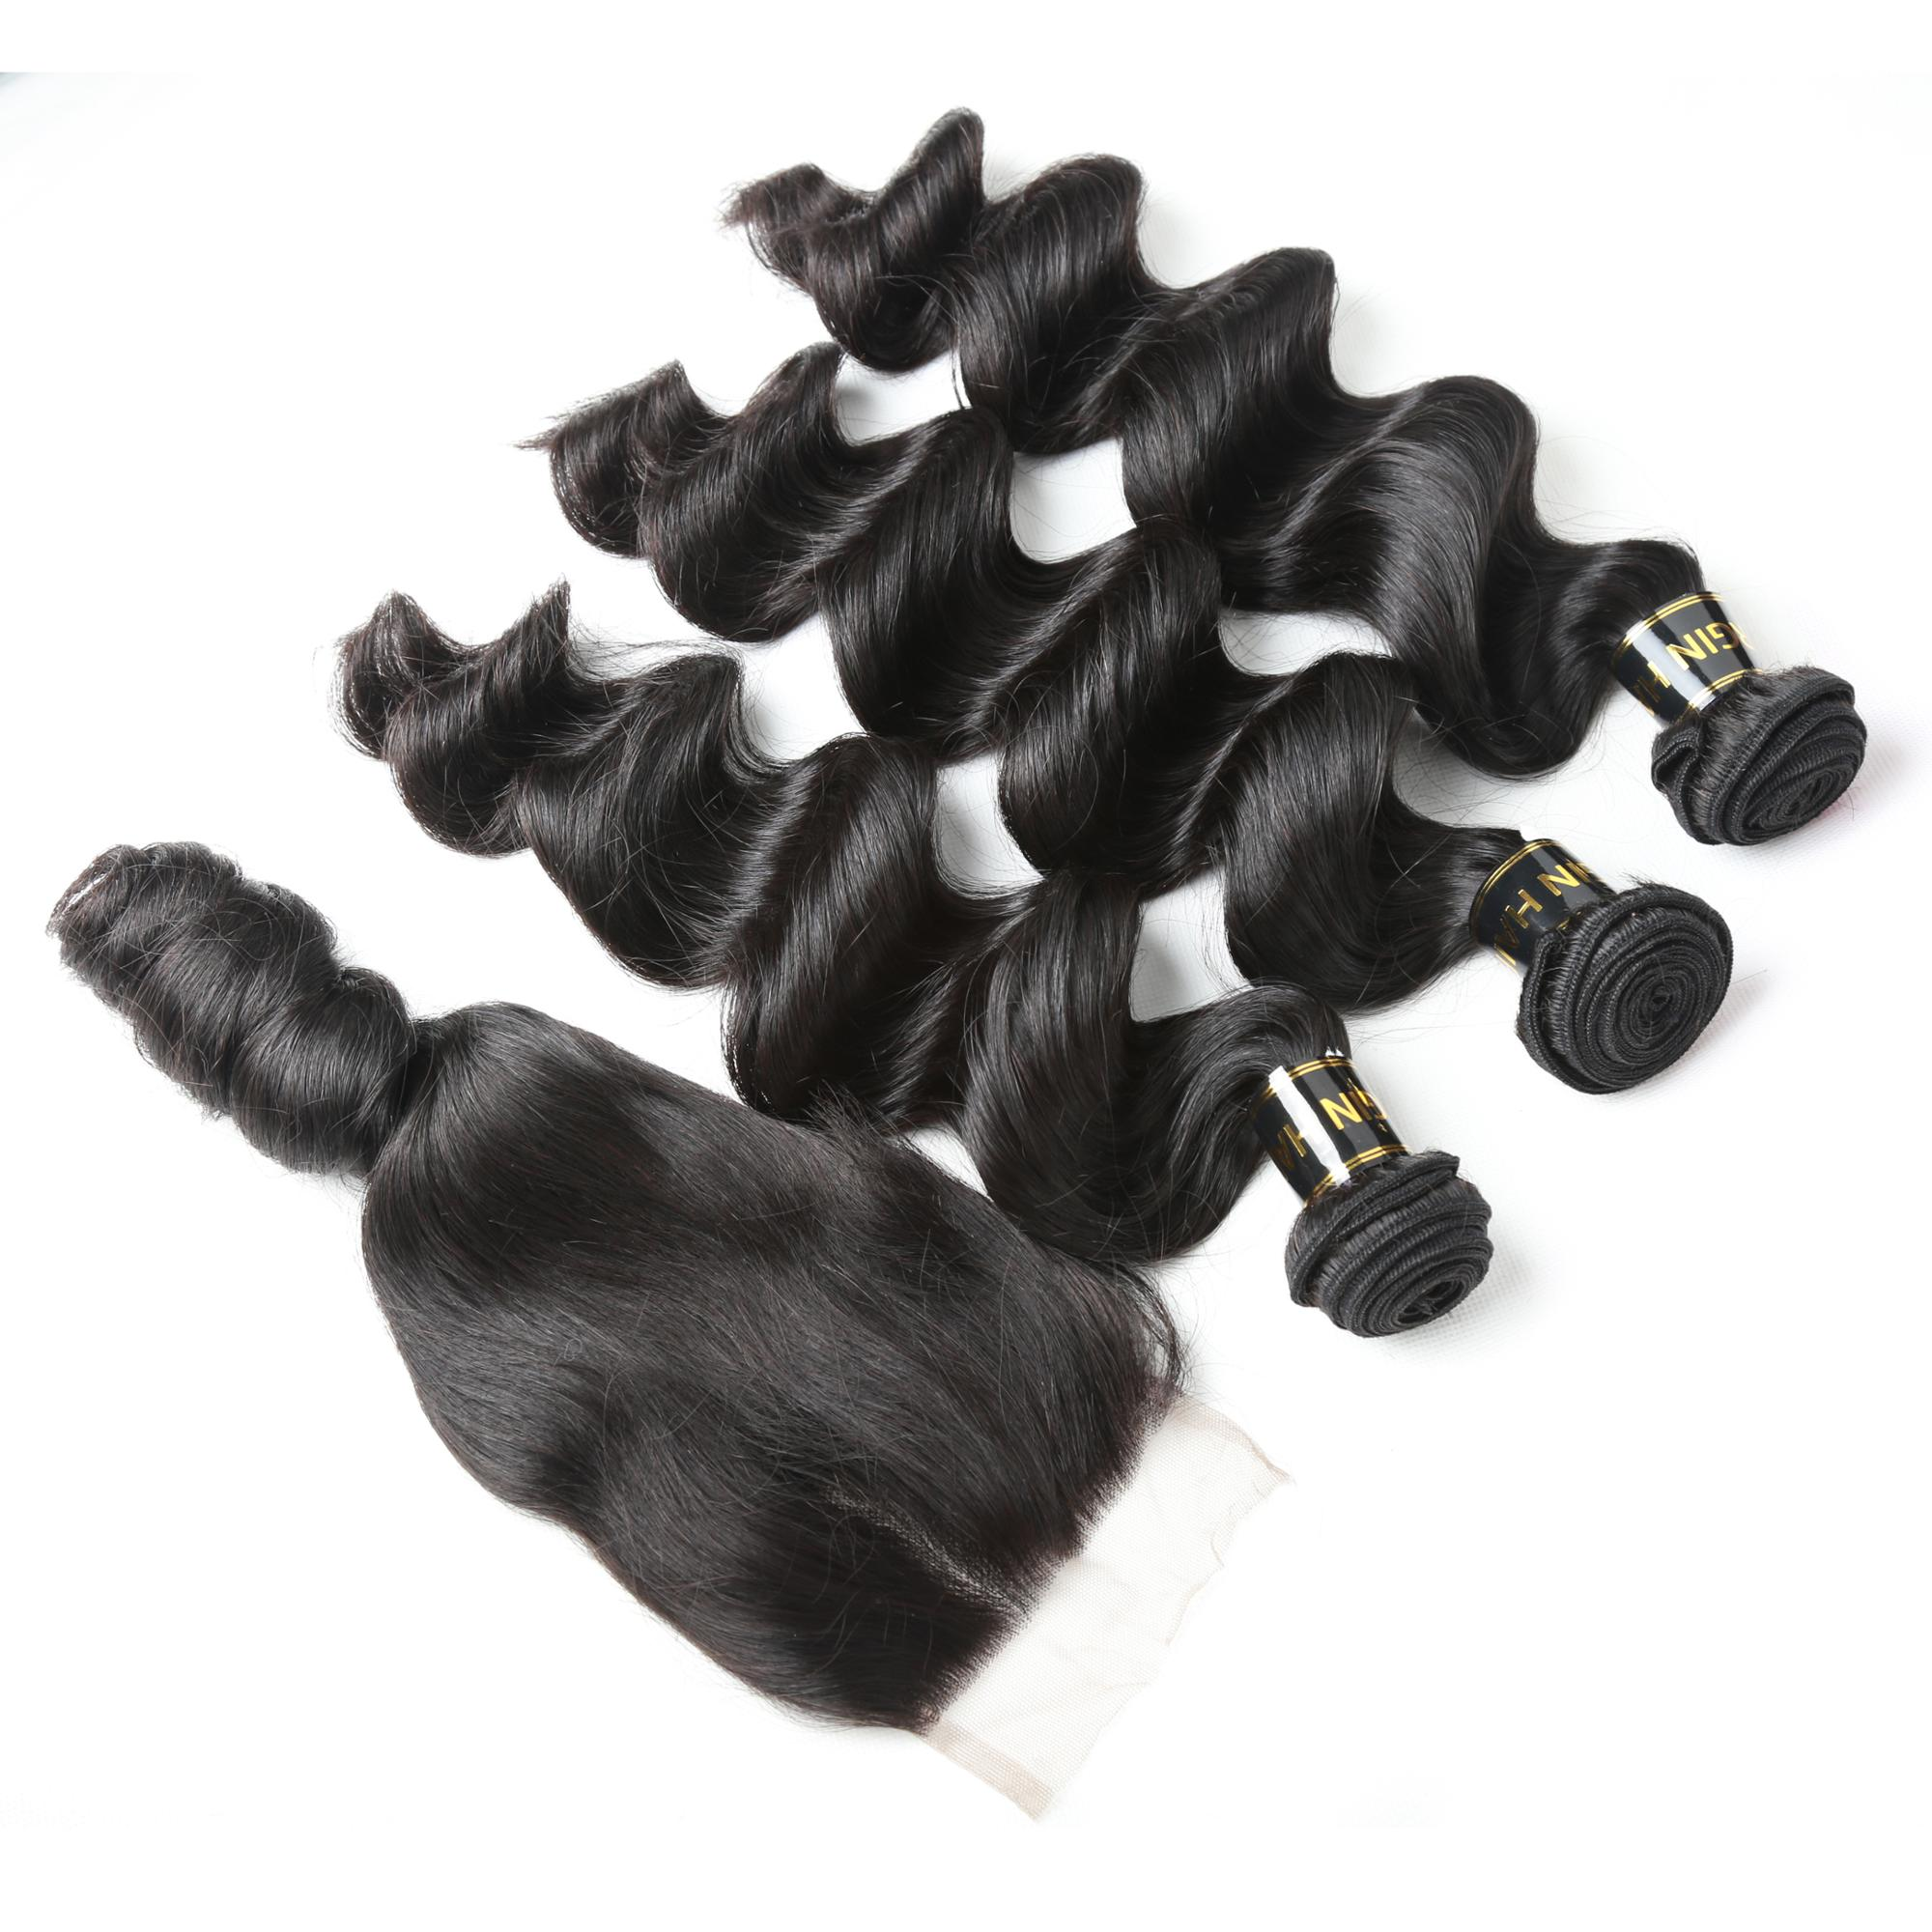 JP Drop Shipping 9A Cuticle Aligned Brazilian <strong>Hair</strong>